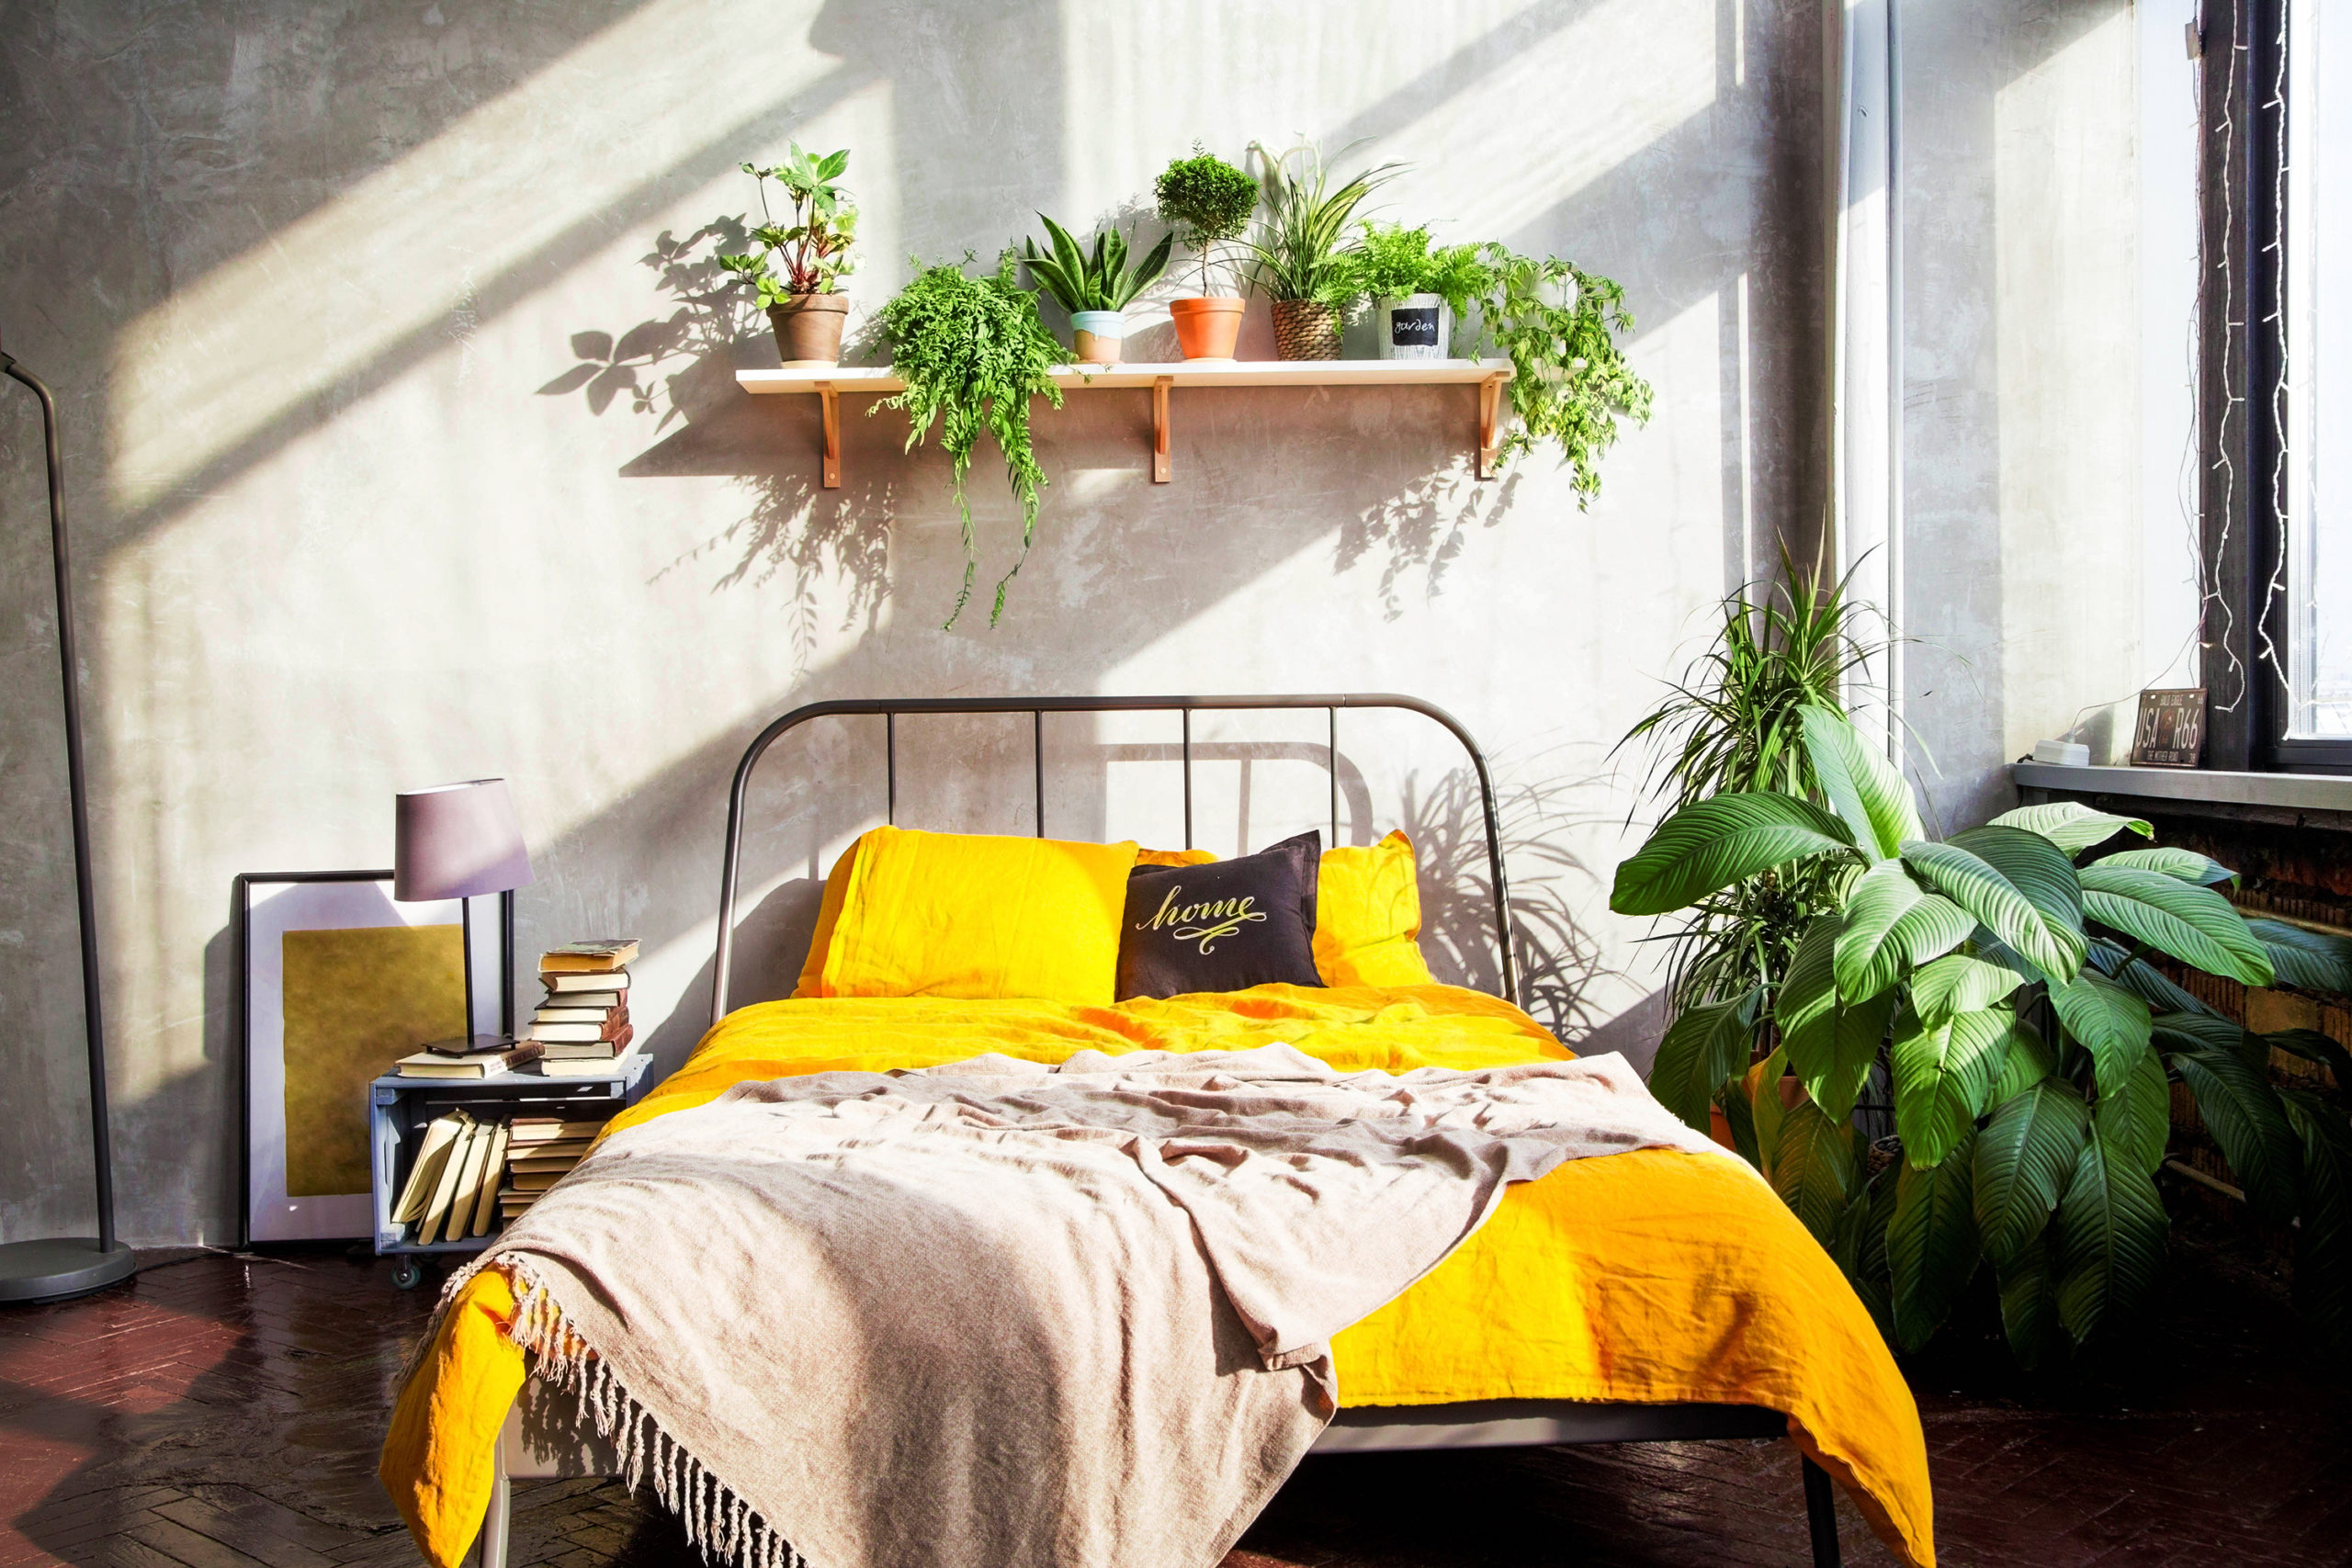 Simple Bedroom Design Ideas That On A Budget But Still Cozy Talkdecor